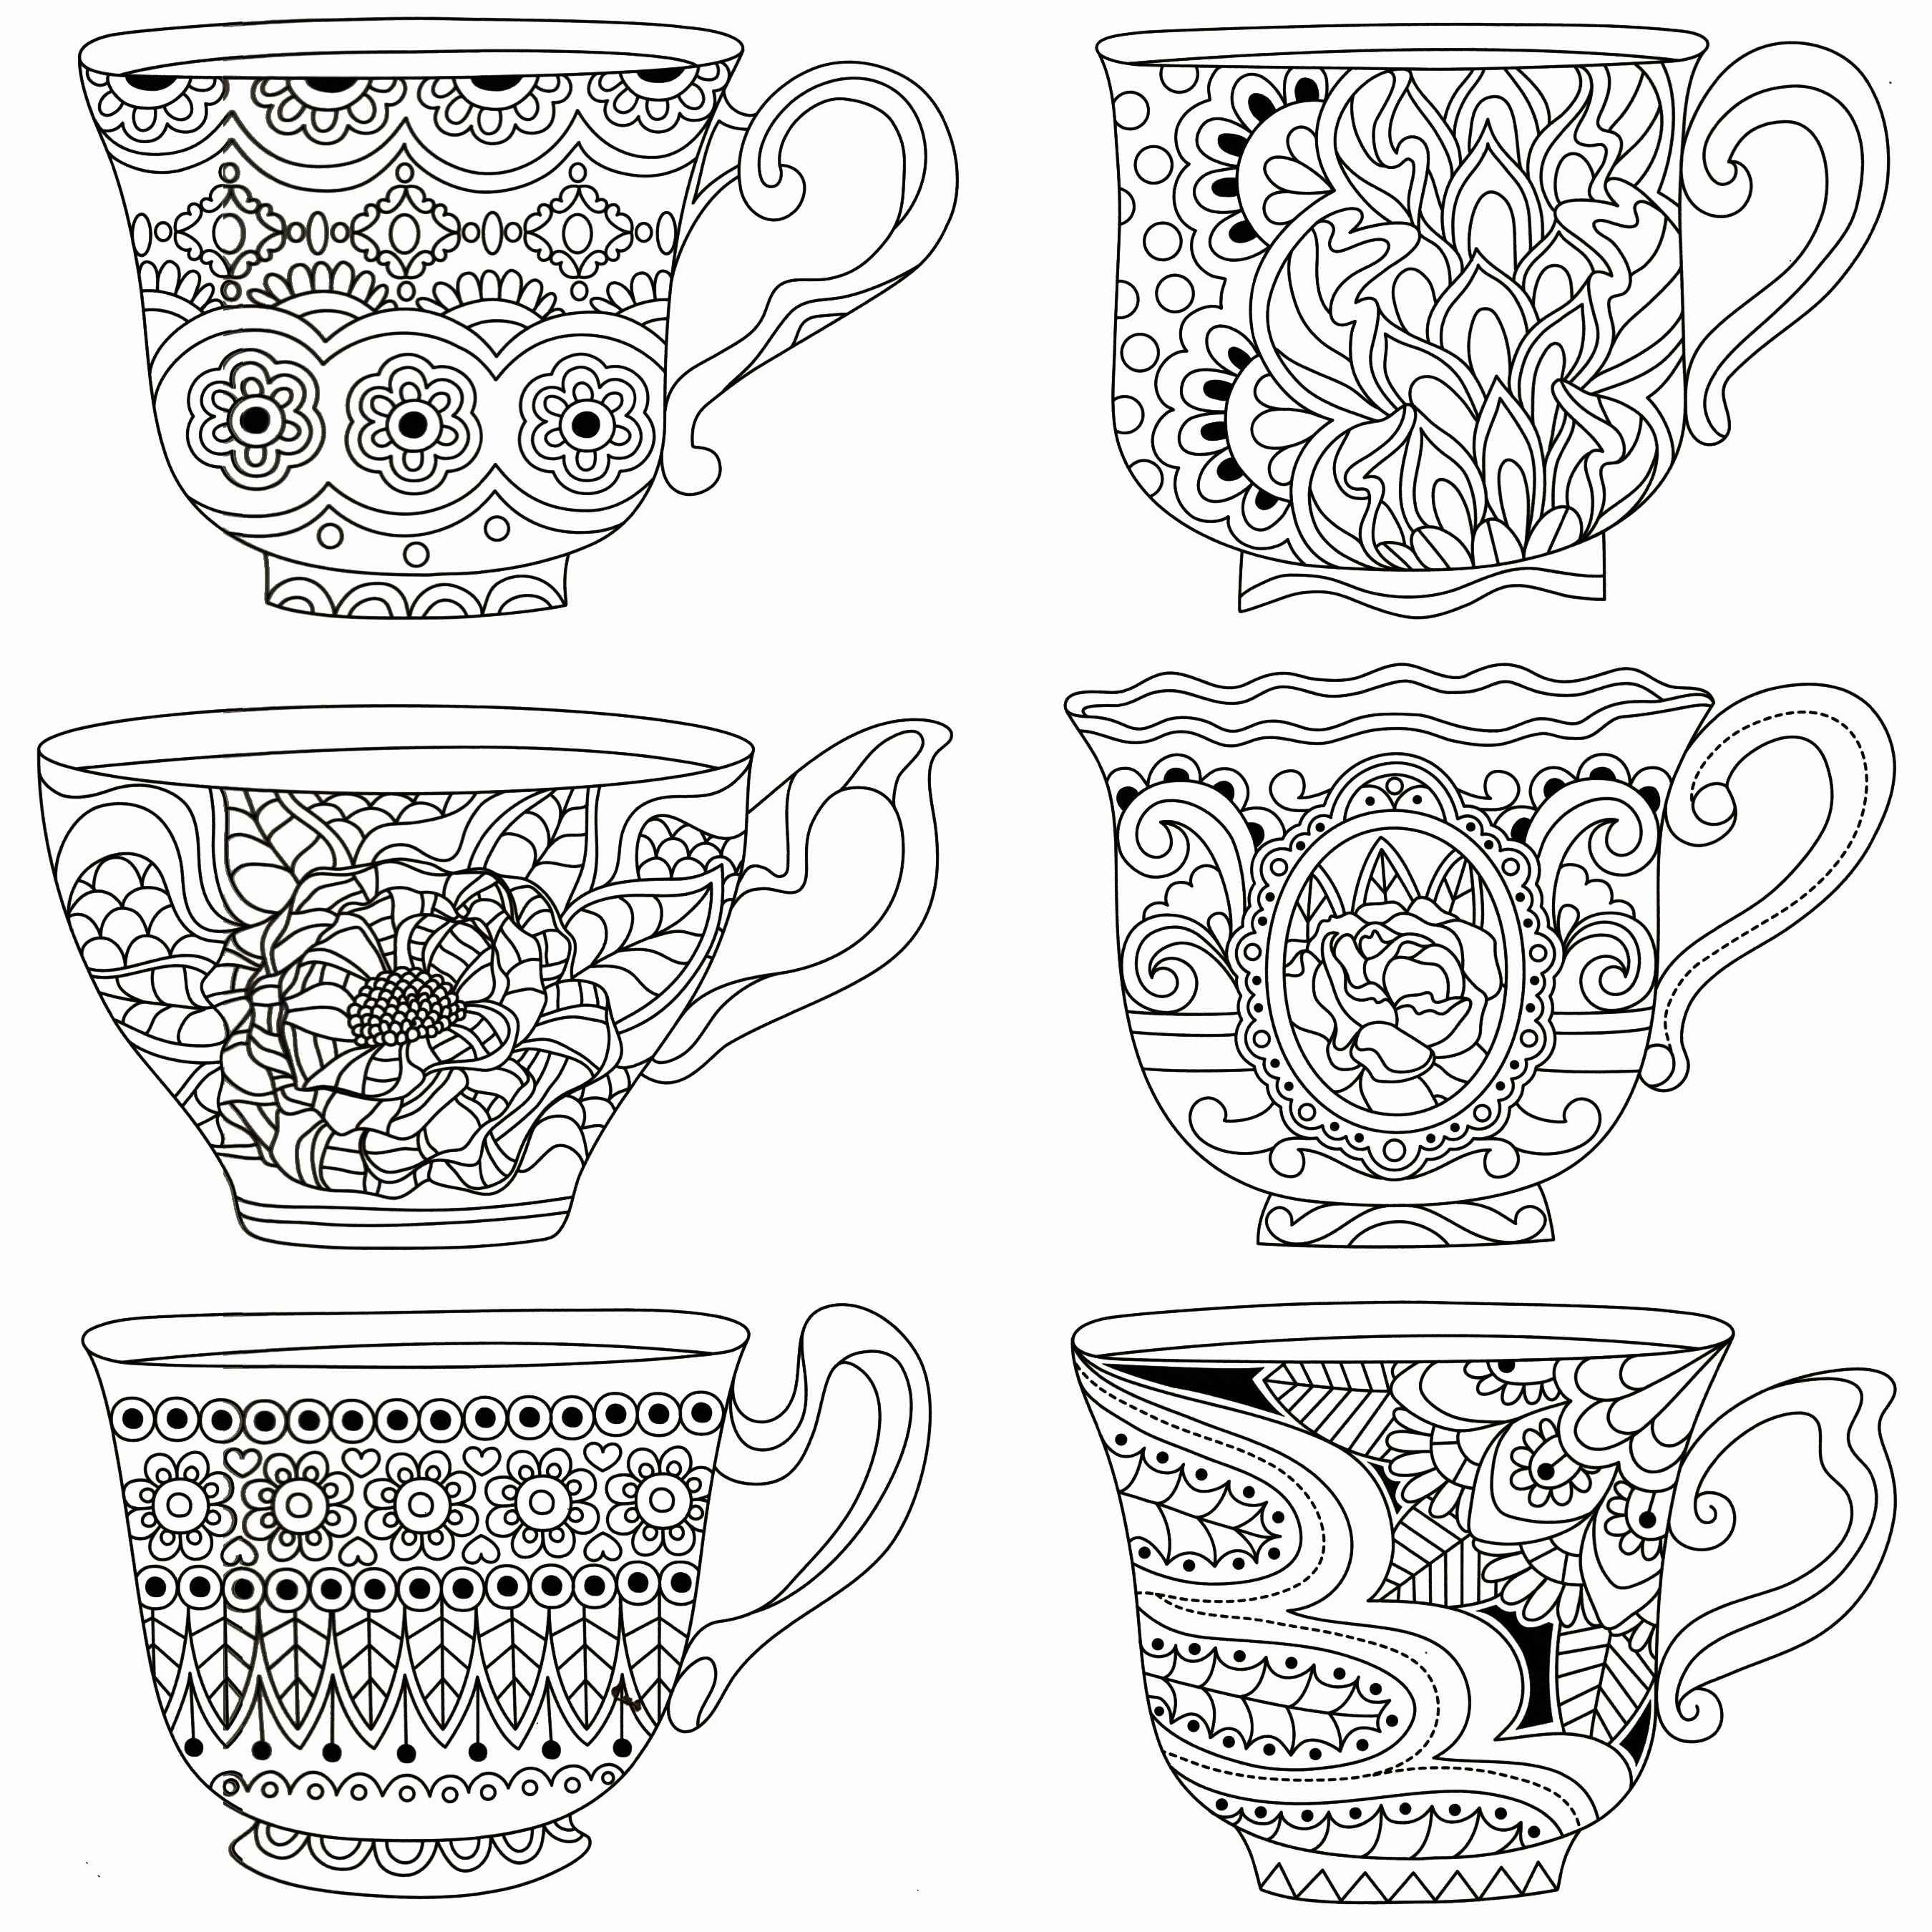 Tea Cup Coloring Page Lovely Stacked Tea Cups Coloring Pages Sketch Coloring Page Coloring Pages Bear Coloring Pages Tea Cups